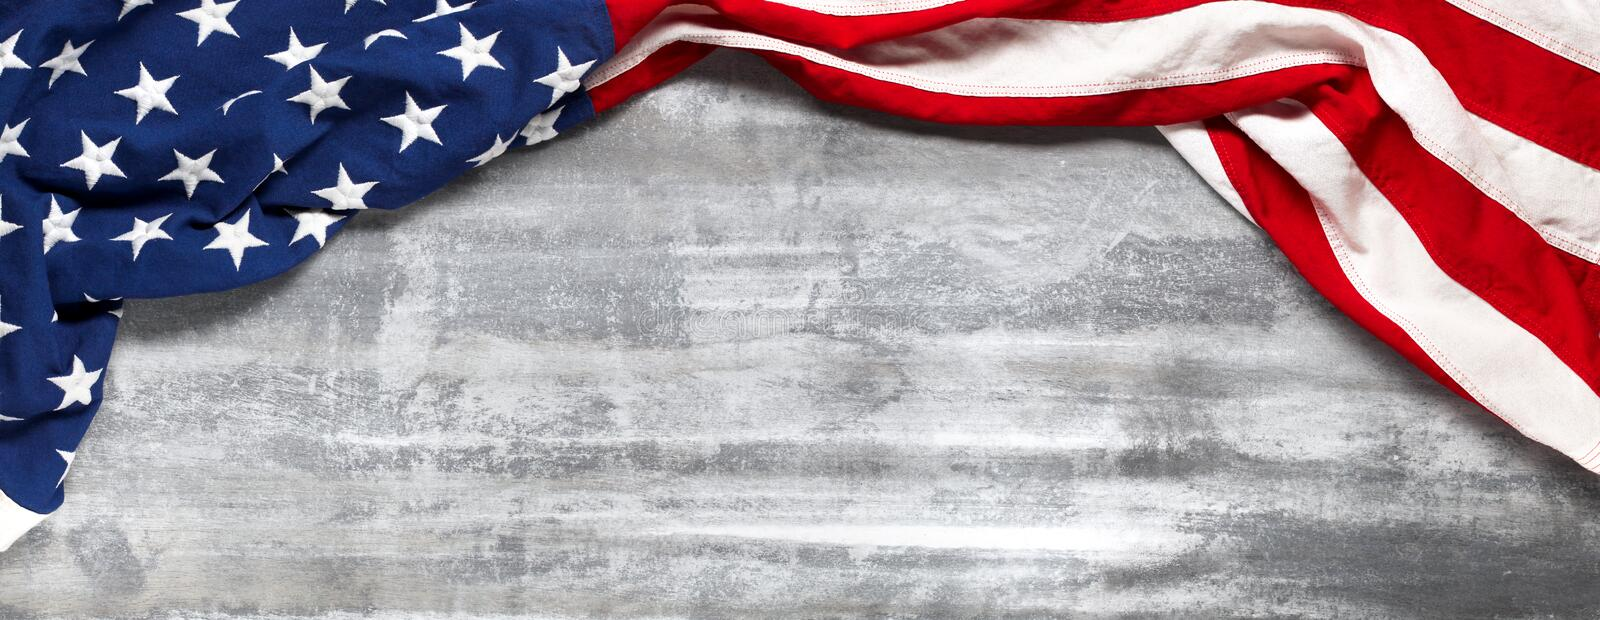 US American flag on white wooden background. For USA Memorial day, Veteran`s day, Labor day, or 4th of July celebration. Wit. US American flag on worn white stock images